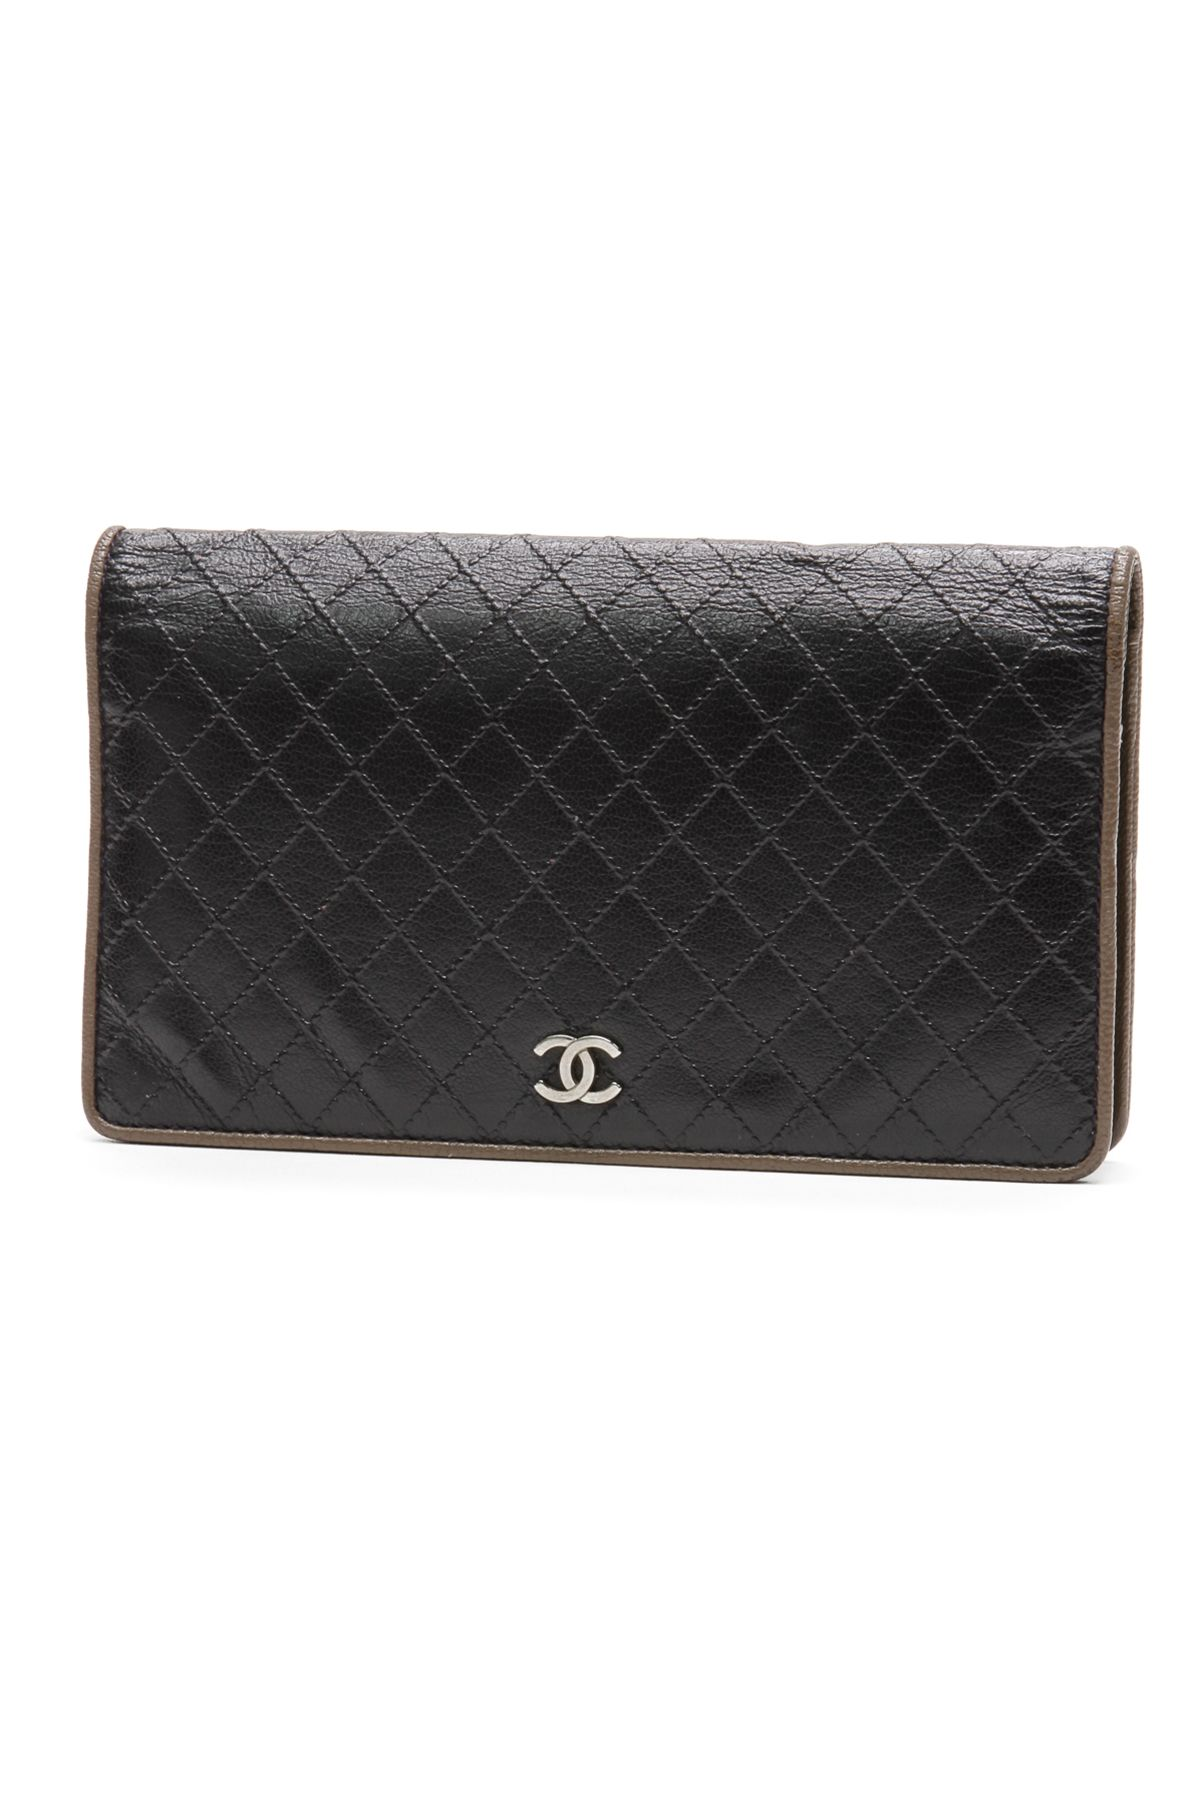 ee4ed5663c65 Chanel quilted calfskin wallet (our price: 549.99) | Crazy for Coco ...